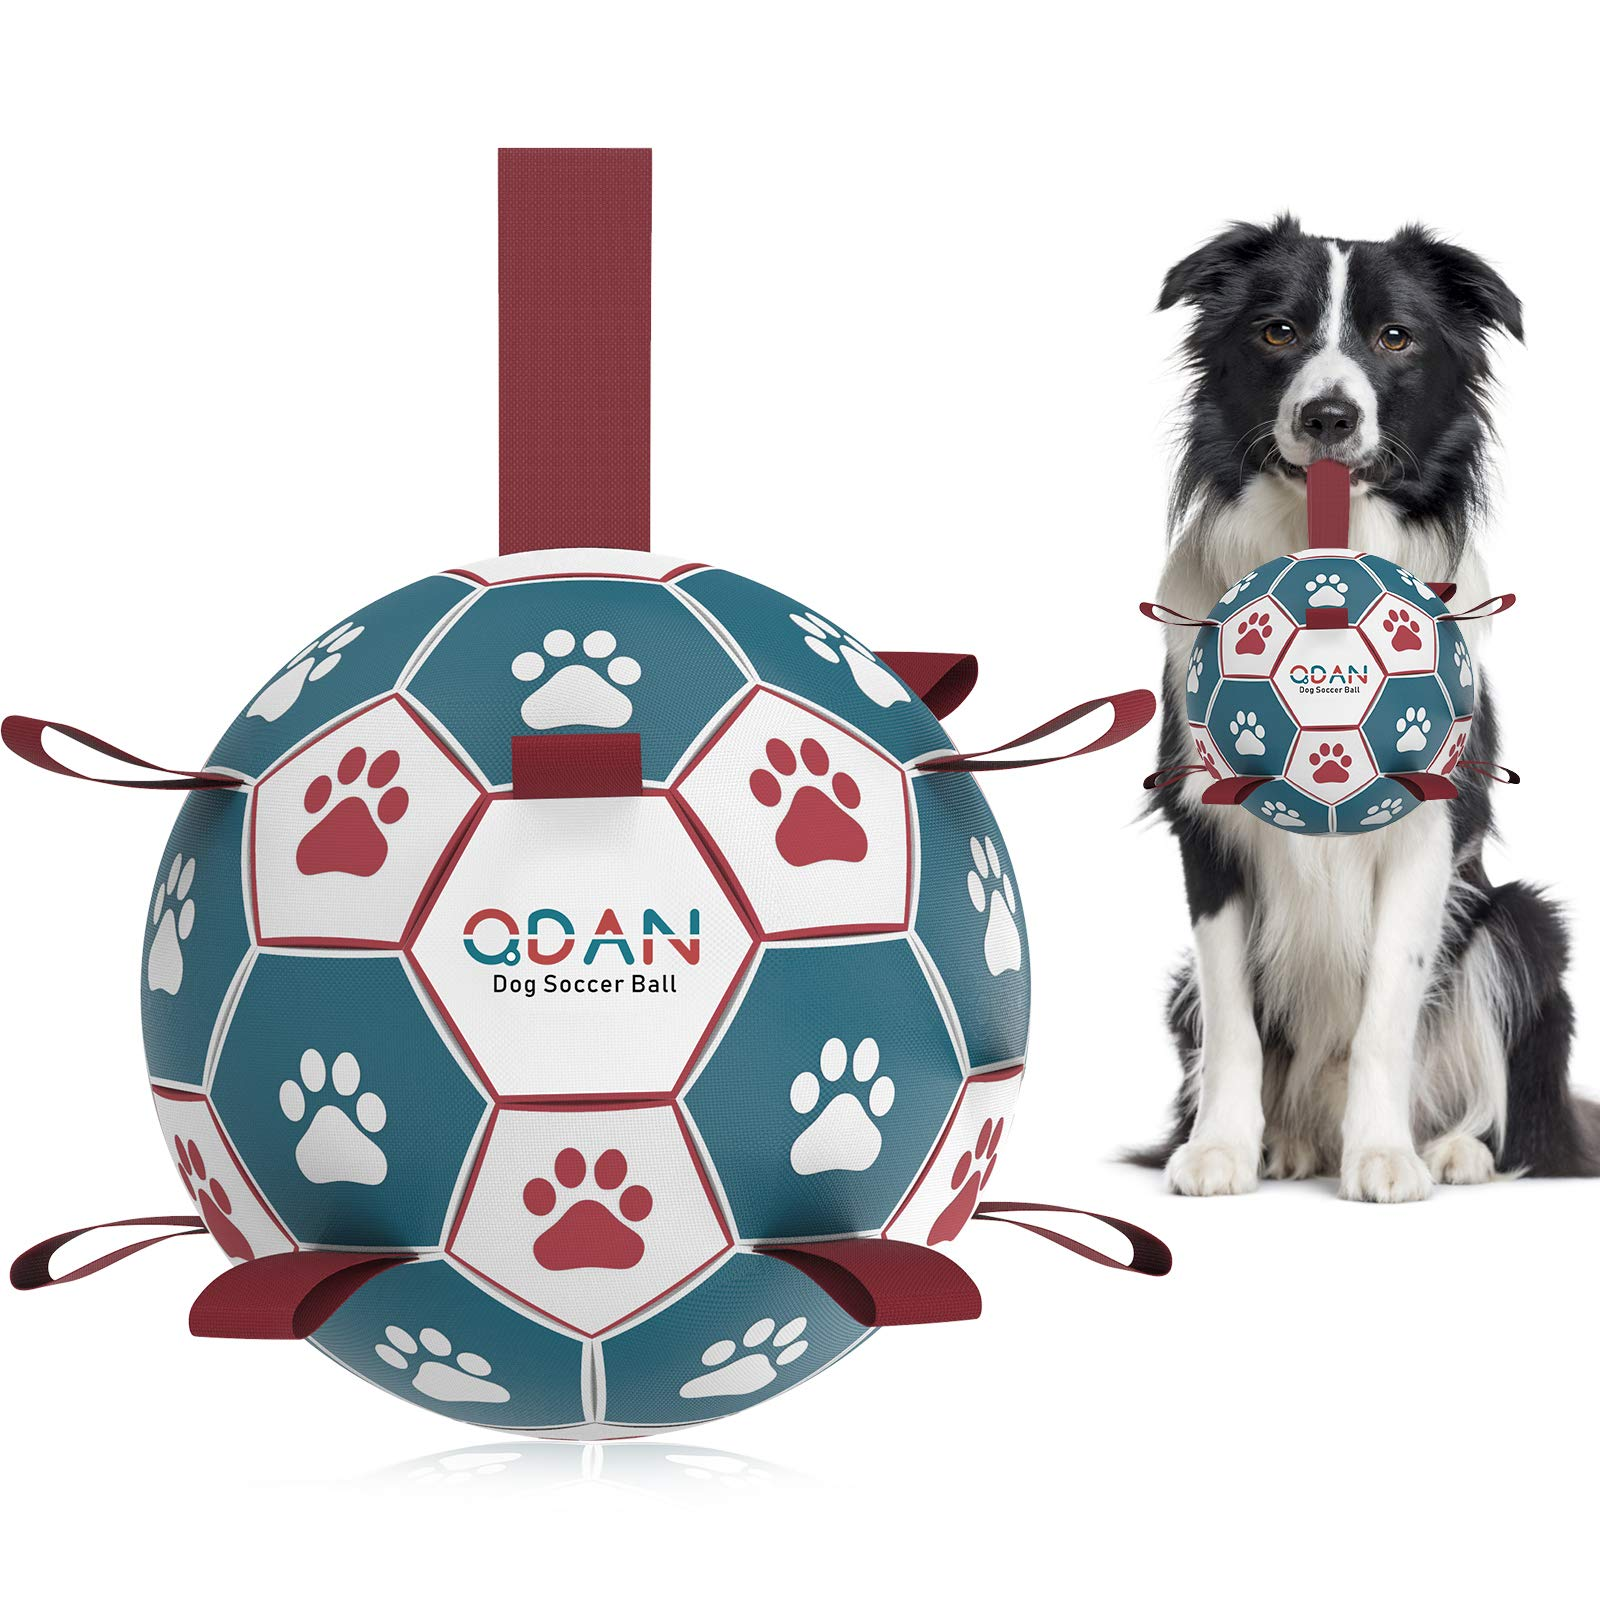 Dog Toys Soccer Ball,Qdan Interactive Dog Toys for Tug of War, Dog Tug Toy, Dog Water Toy, Durable Dog Balls for Small & Medium Dogs-Blue&Red